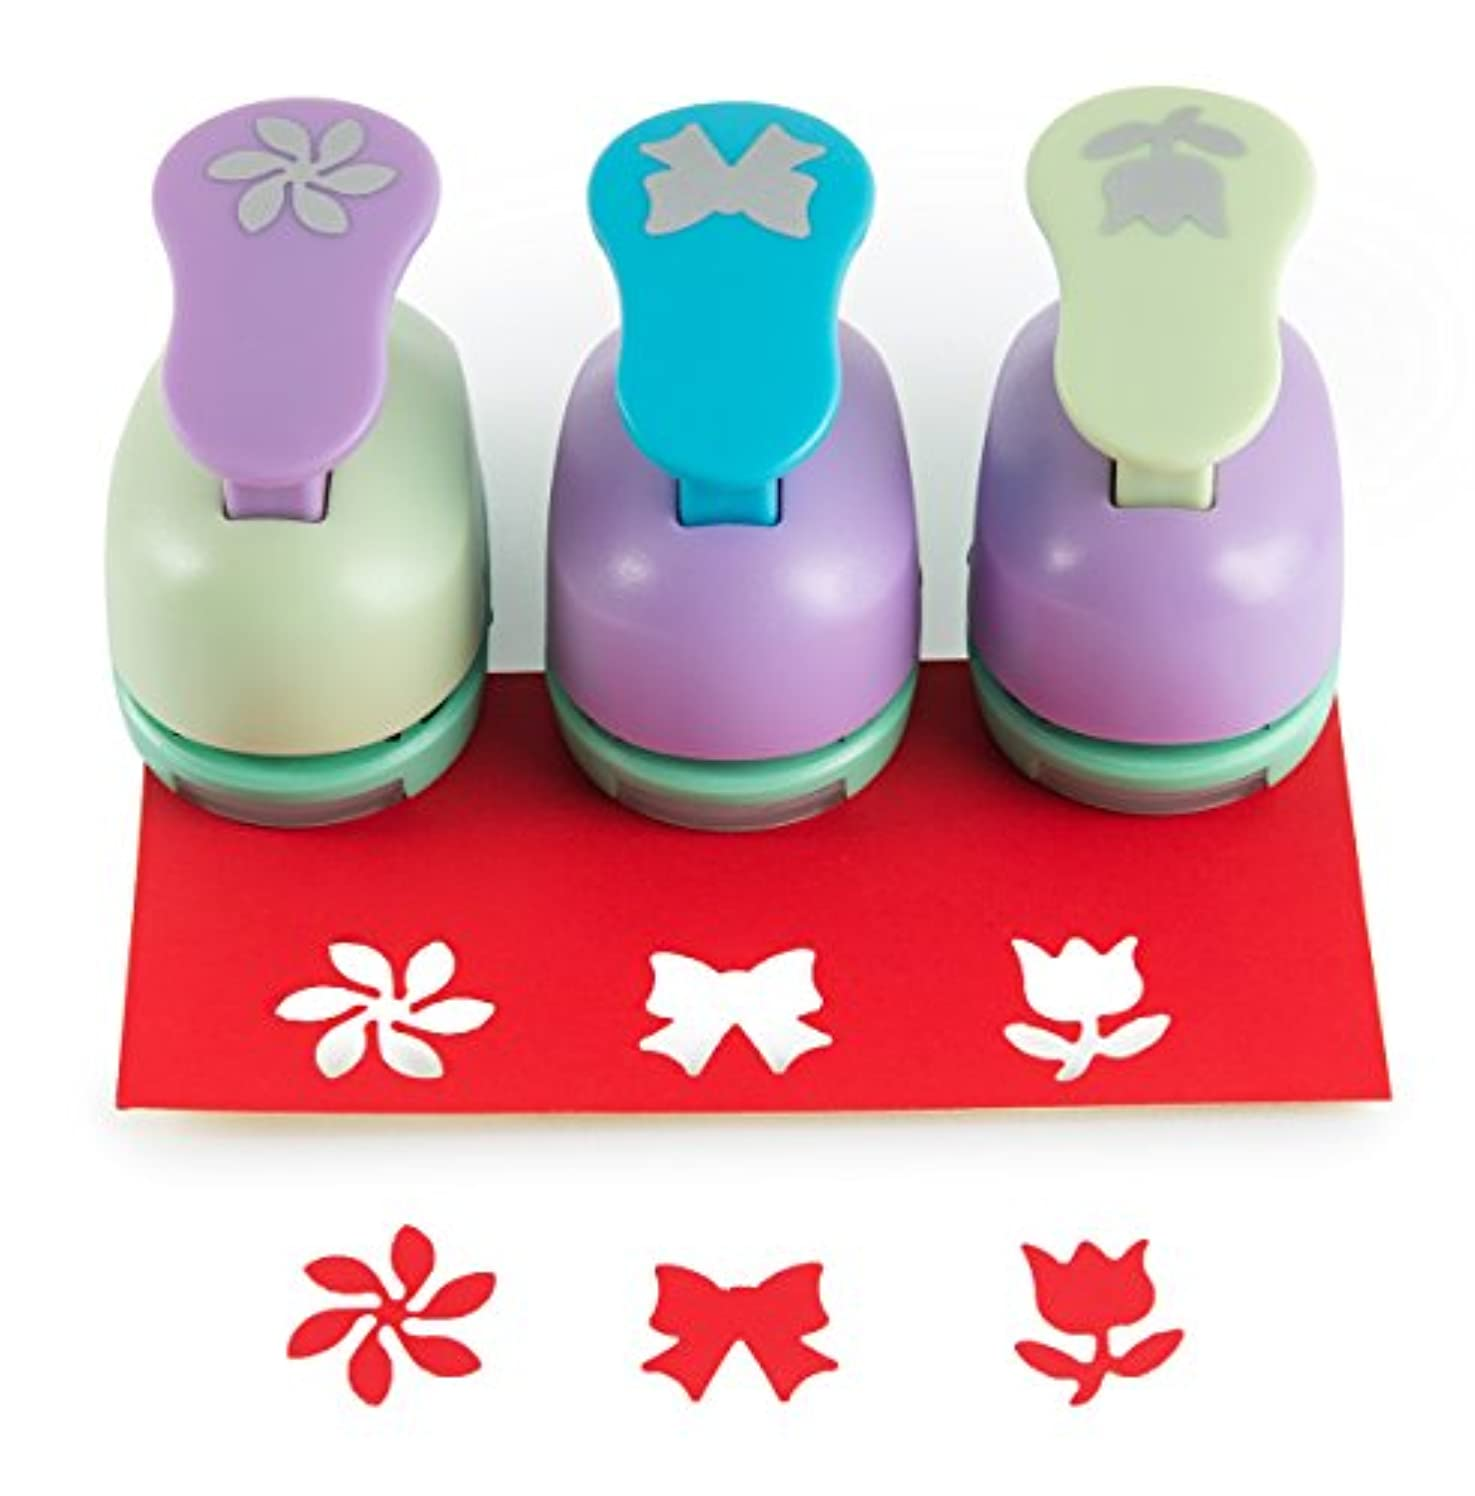 SICOHOME Scrapbooking Punches,Rose/Bowknot/Flower,Pack of 3,Paper Punches for Kids and Adualts